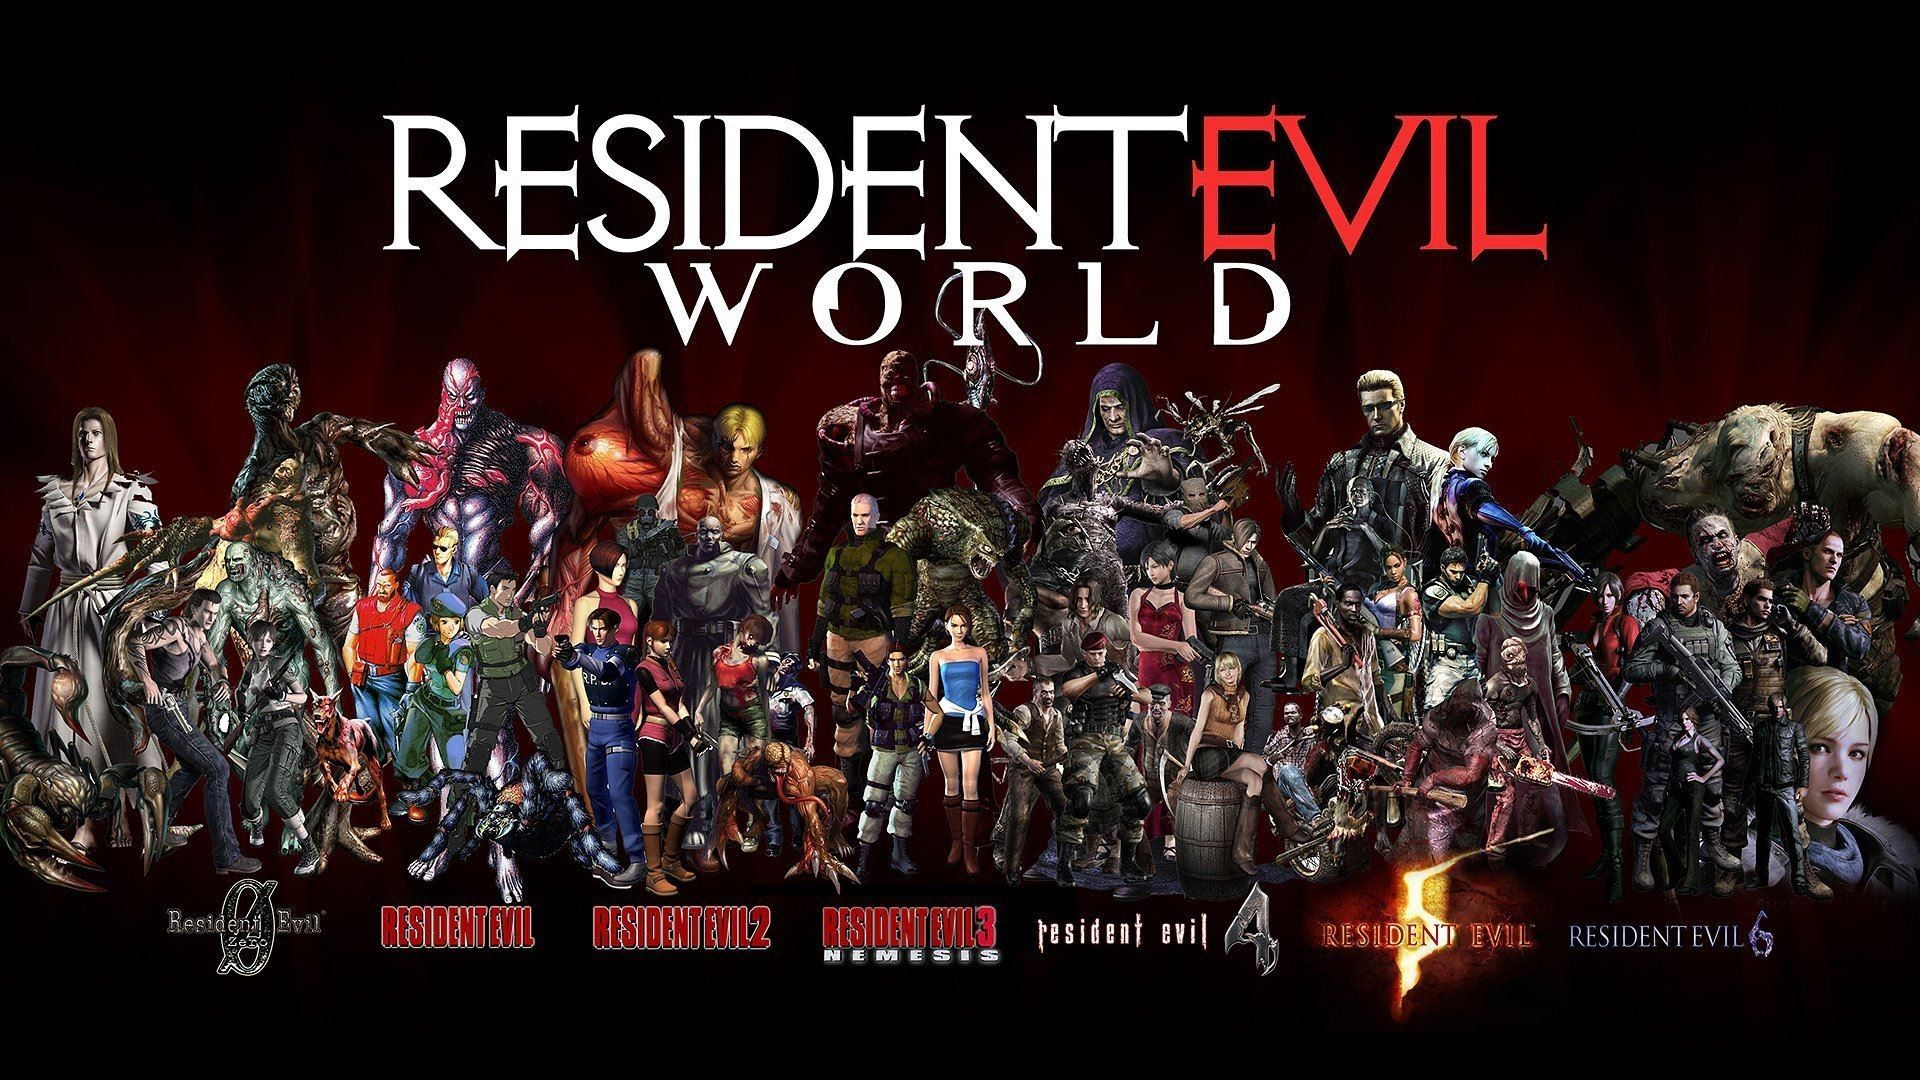 Resident Evil Wallpapers Hd Wallpaper With Images Resident